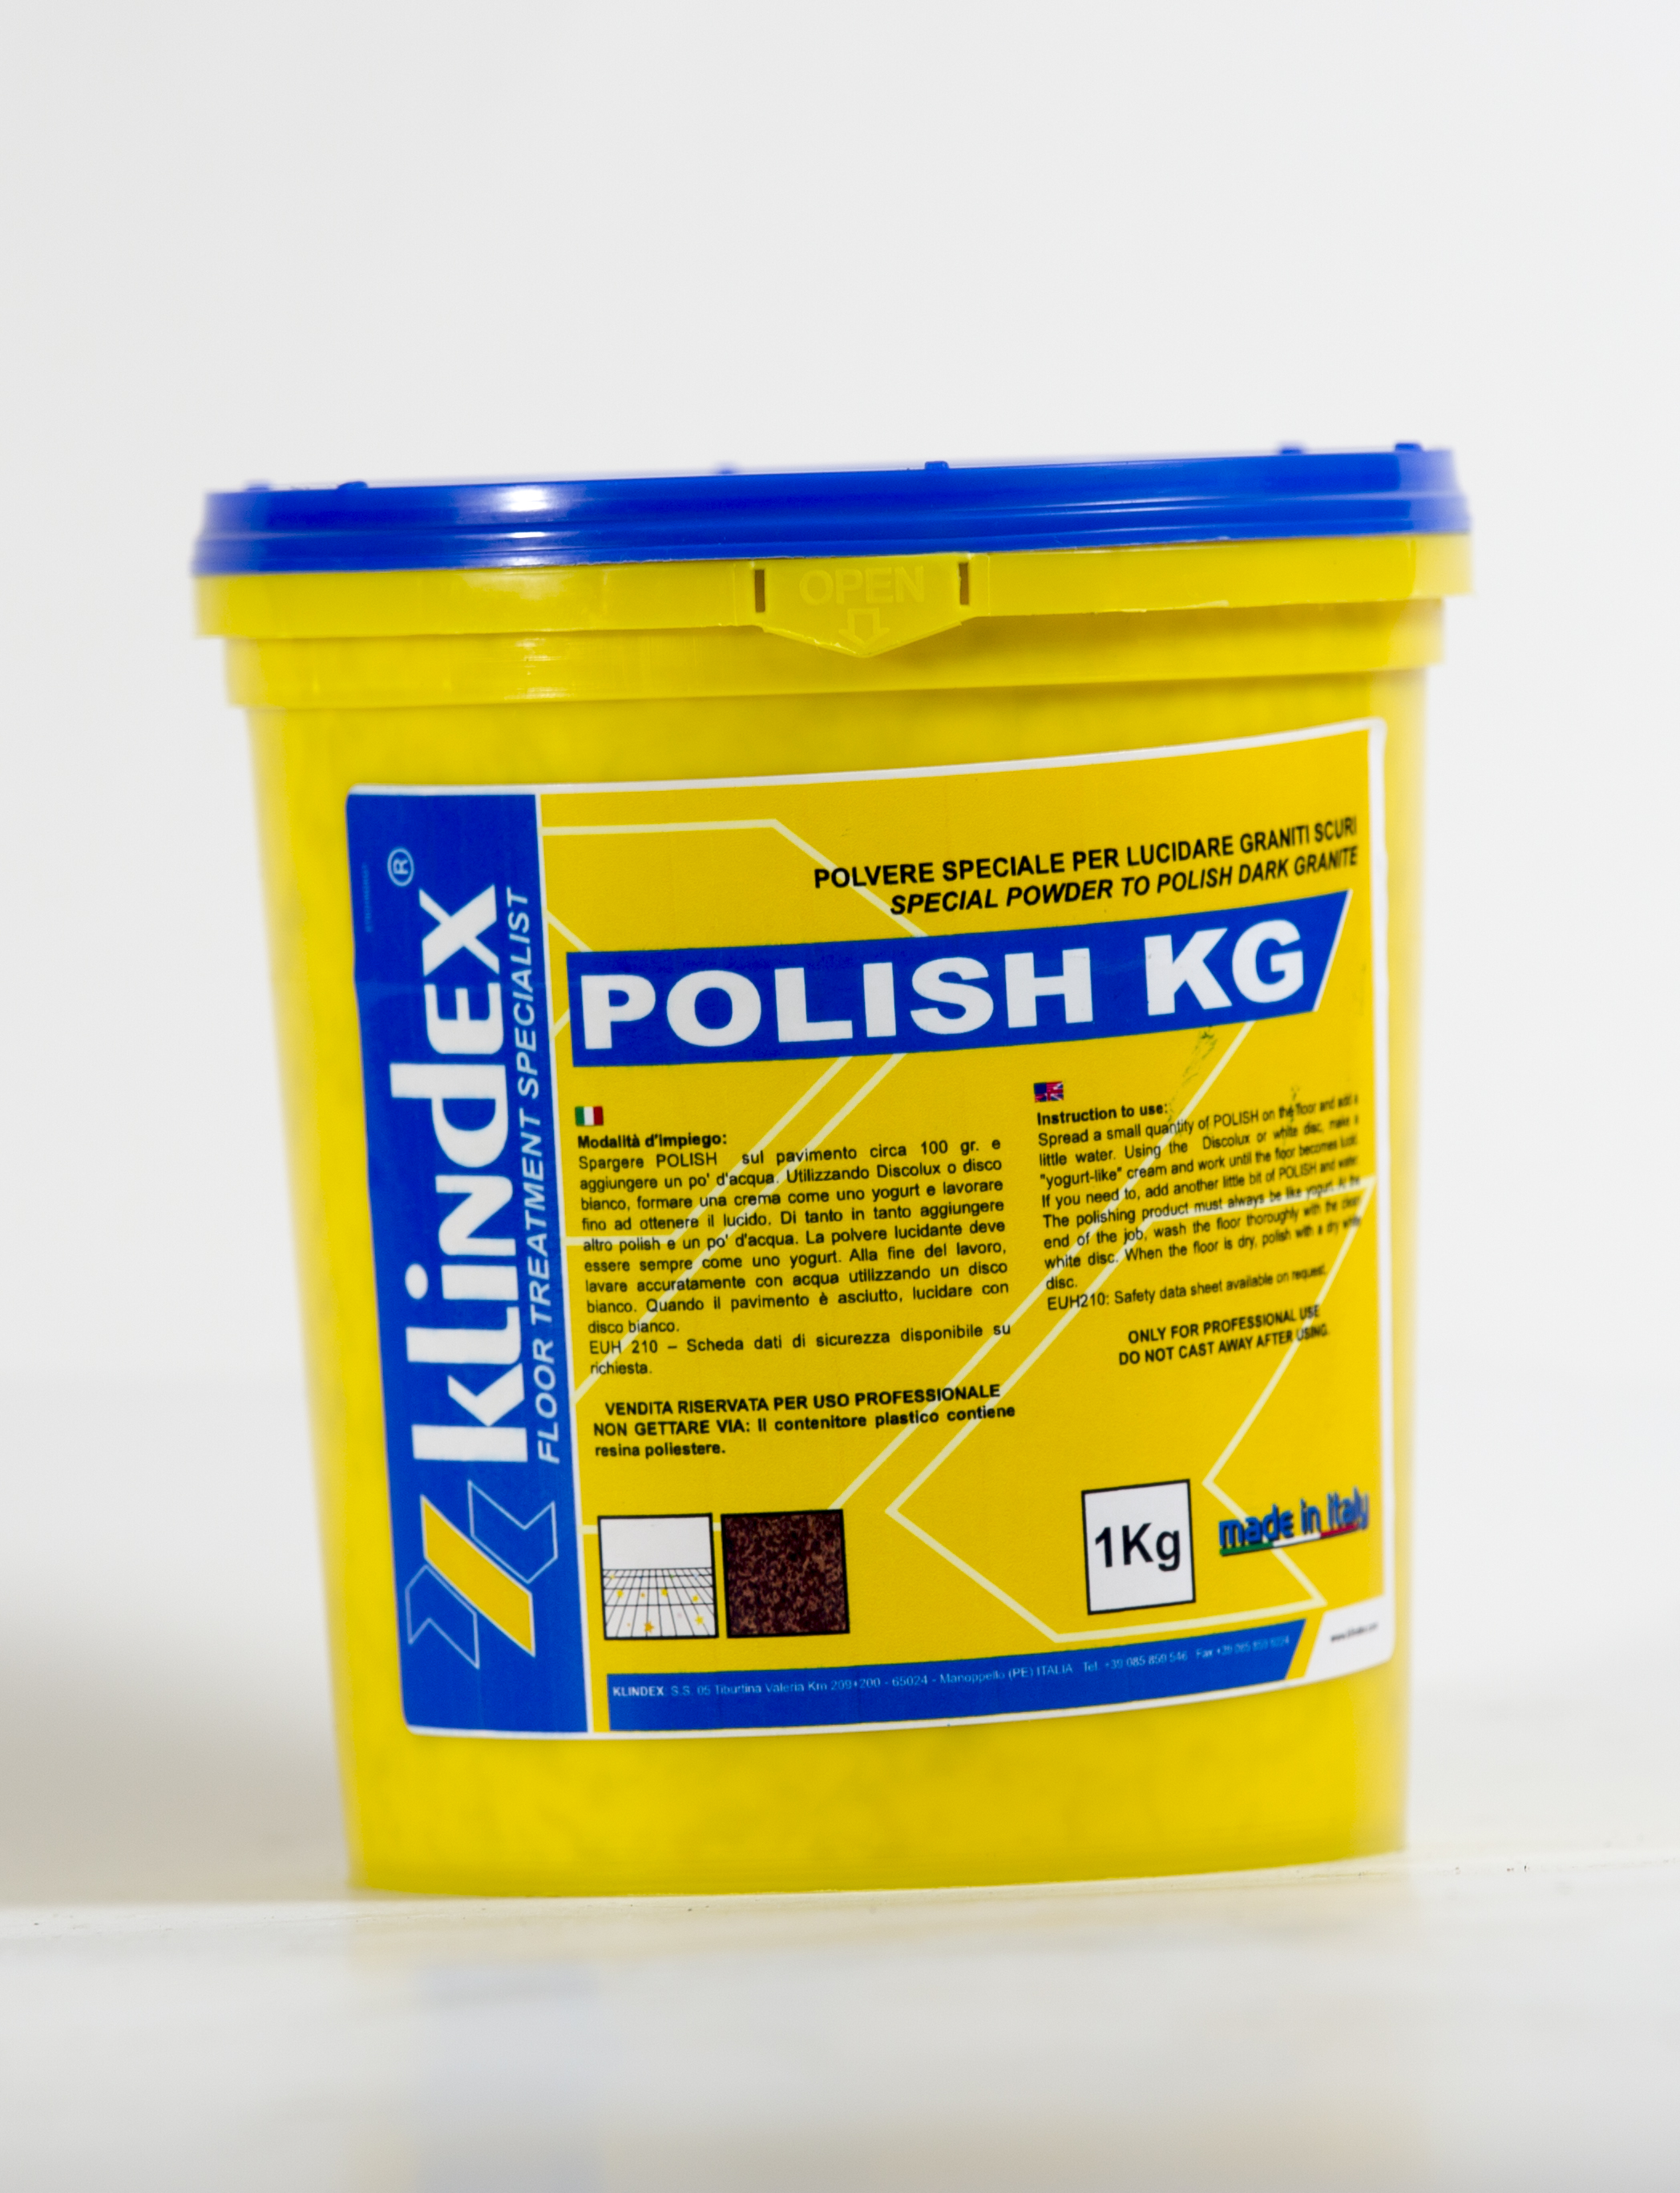 Polish Kg Viprone Integrated Limited